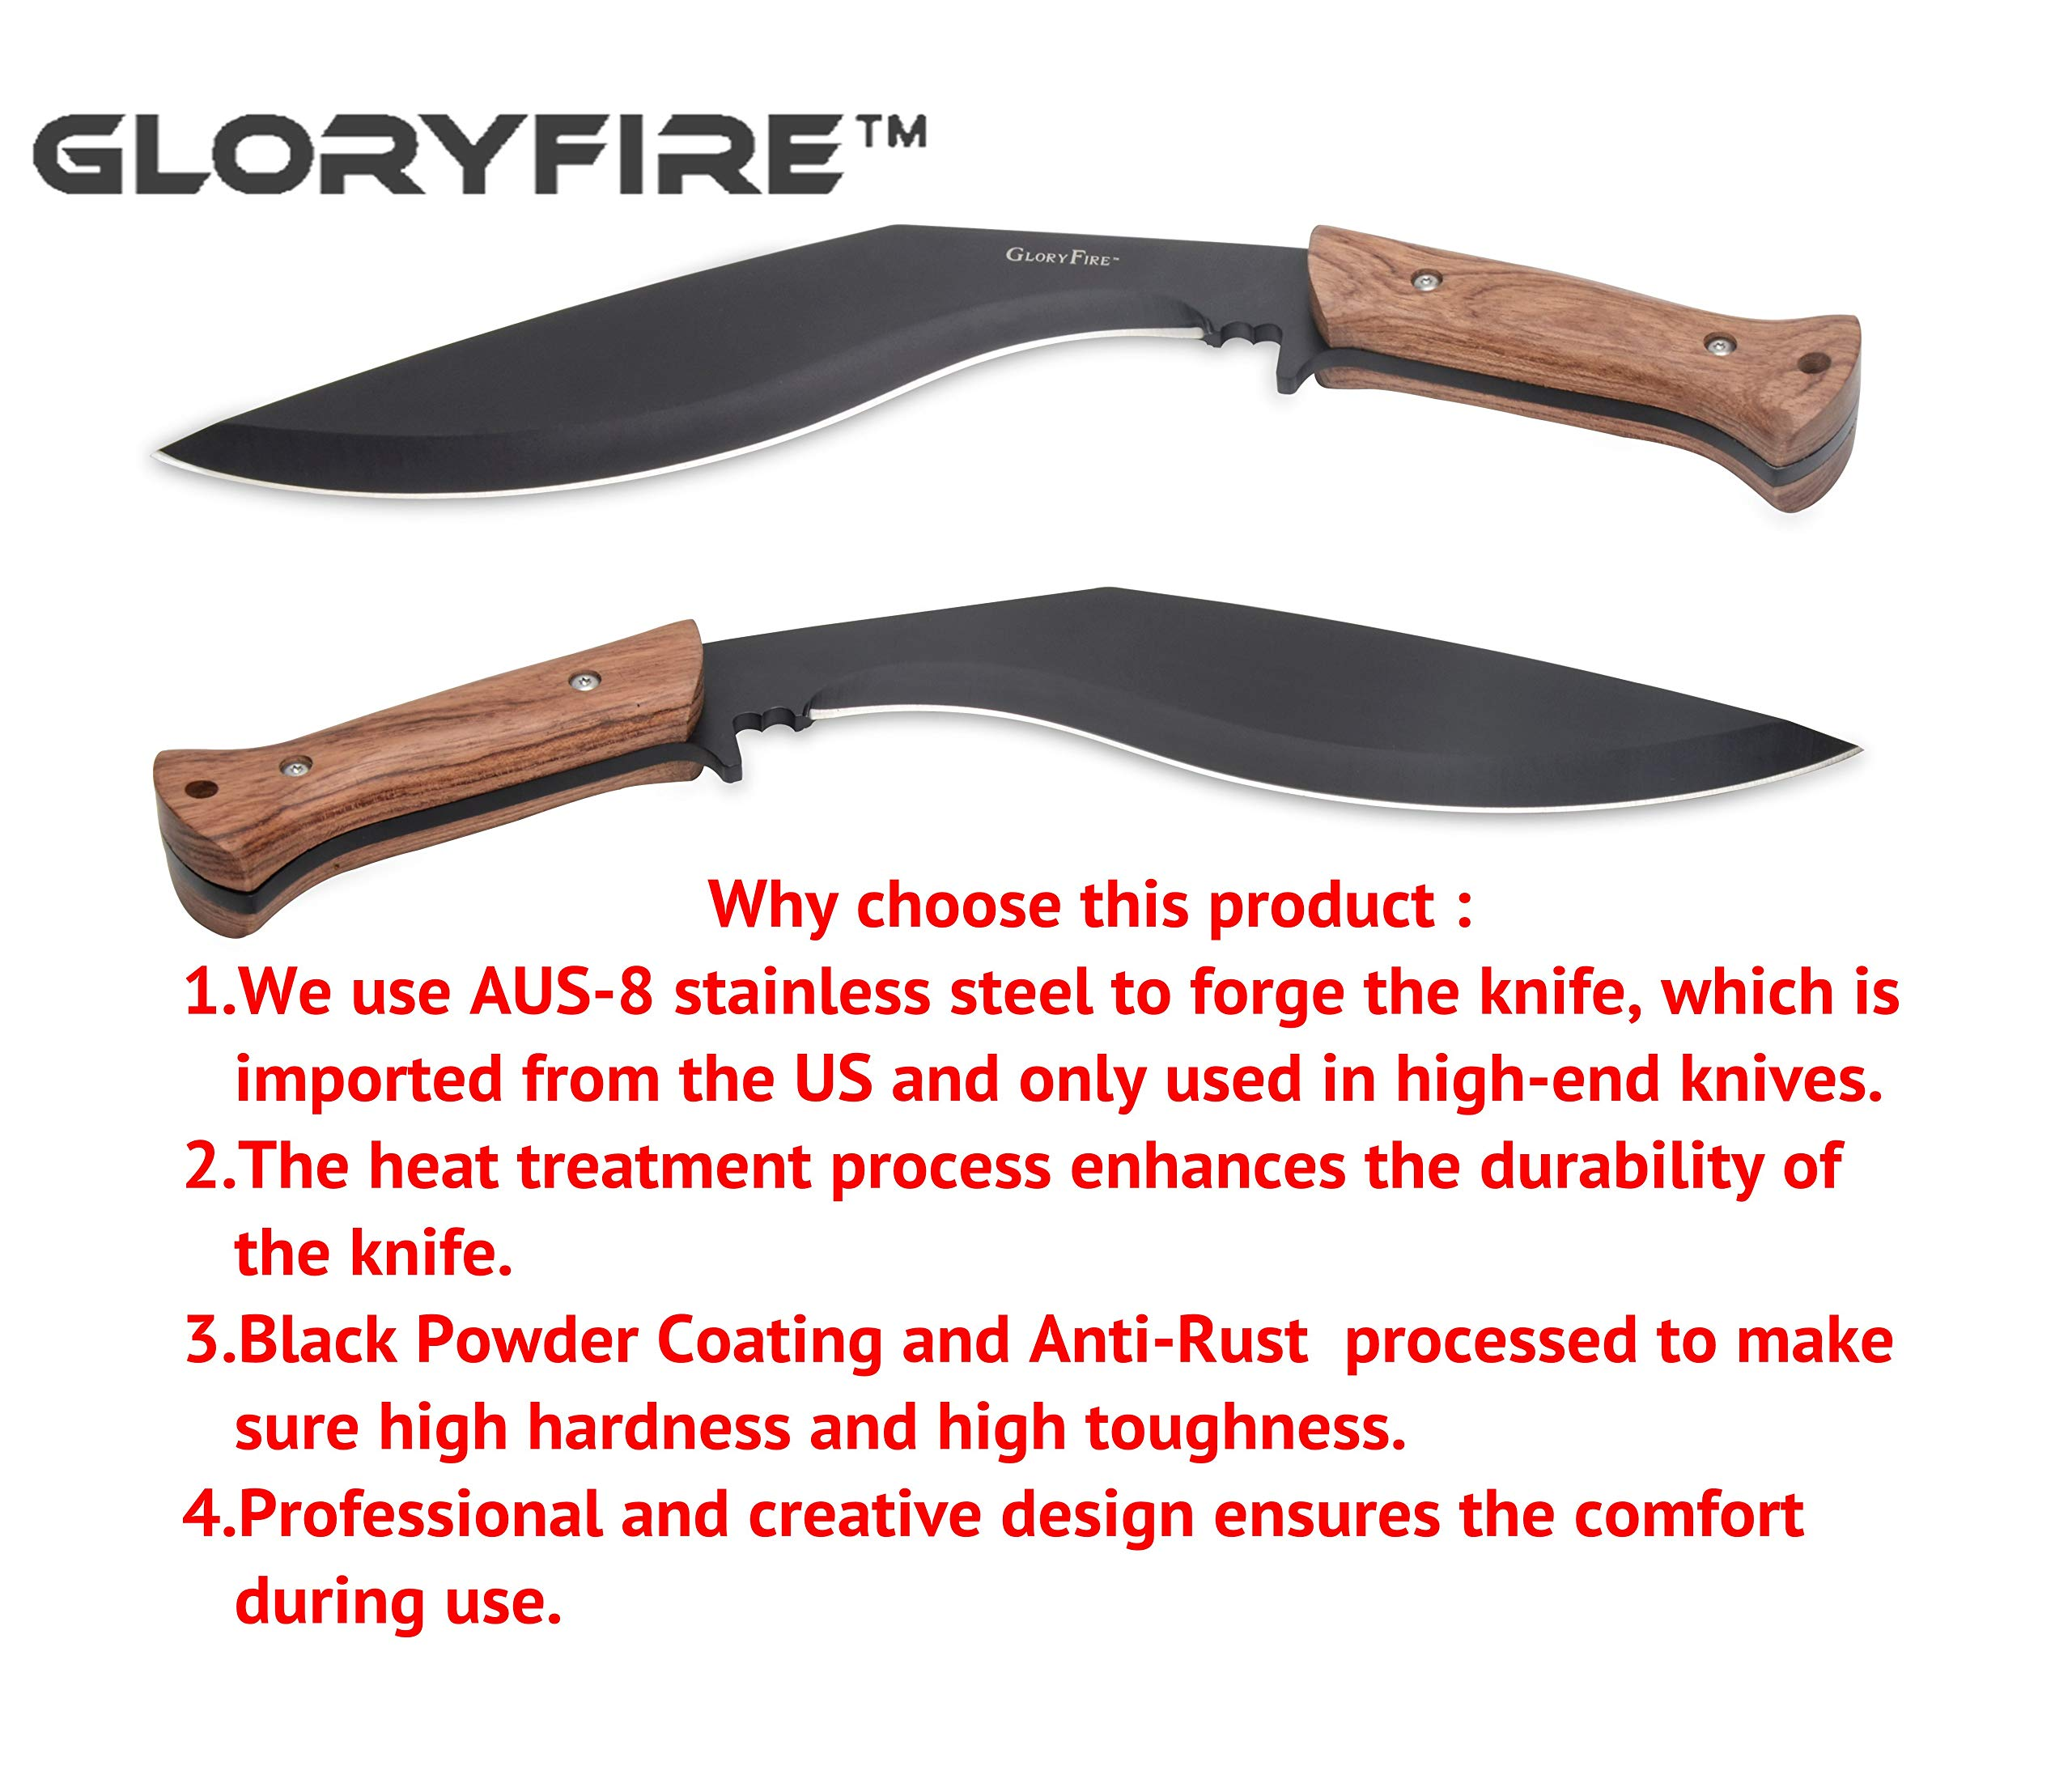 GLORYFIRE Kukri Knife AUS-8 Stainless Anti-Rust Processed Arc Hand Protected Design Fixed Blade Full Tang with Nylon Sheath Tactical Kukri Knife (Wooden Handle) by GLORYFIRE (Image #2)